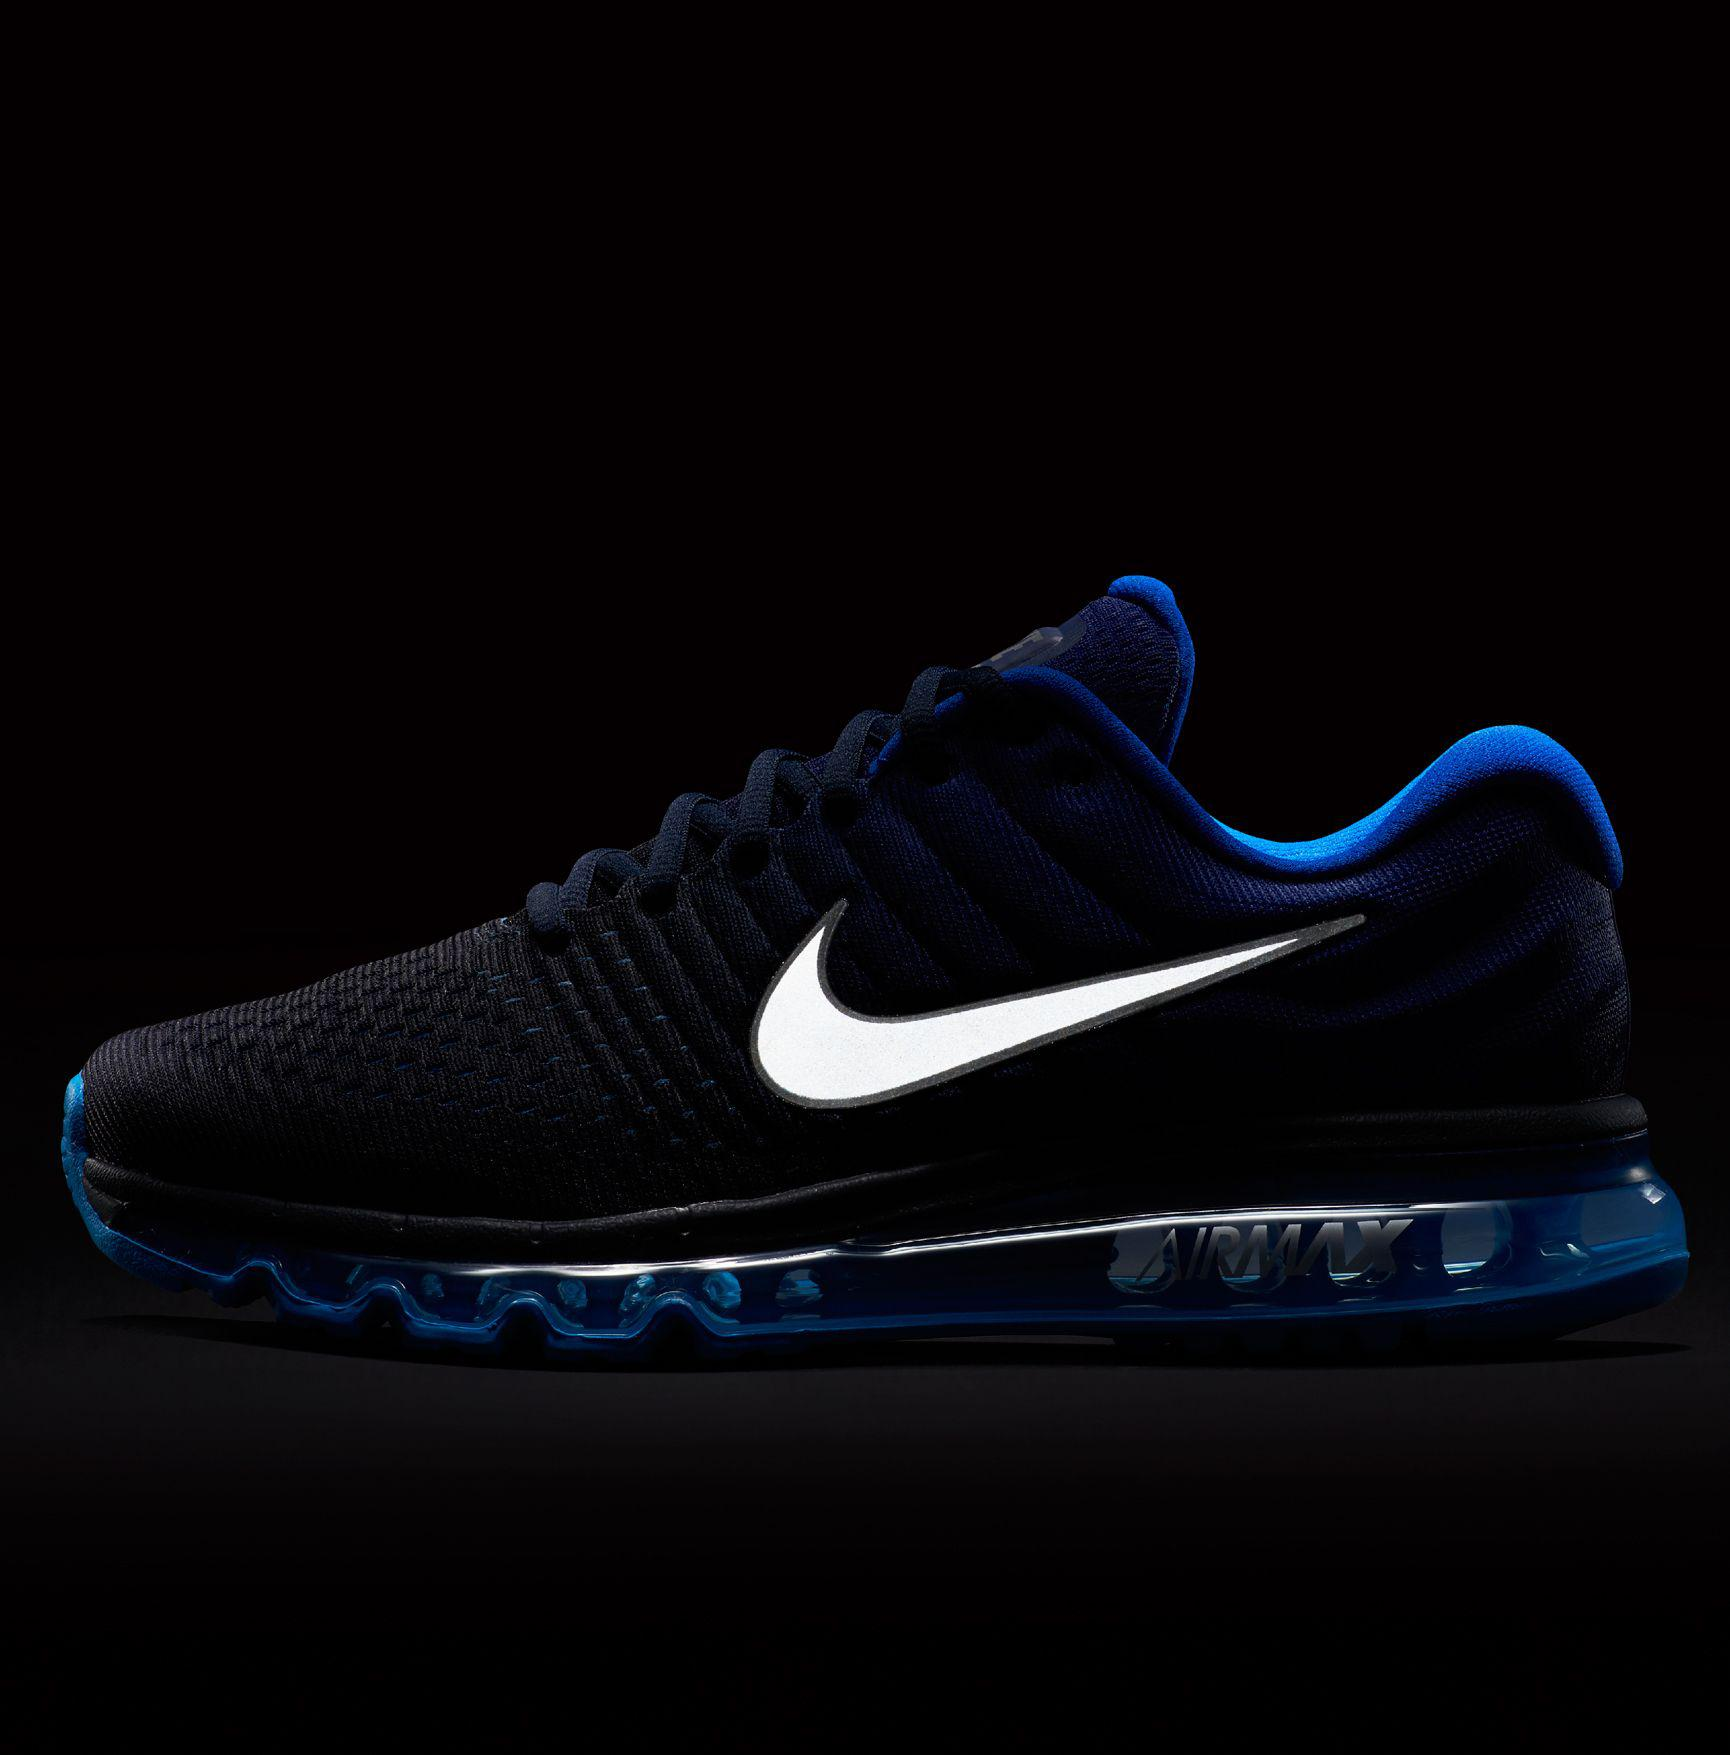 Nike - Blue Air Max 2017 Running Shoes for Men - Lyst